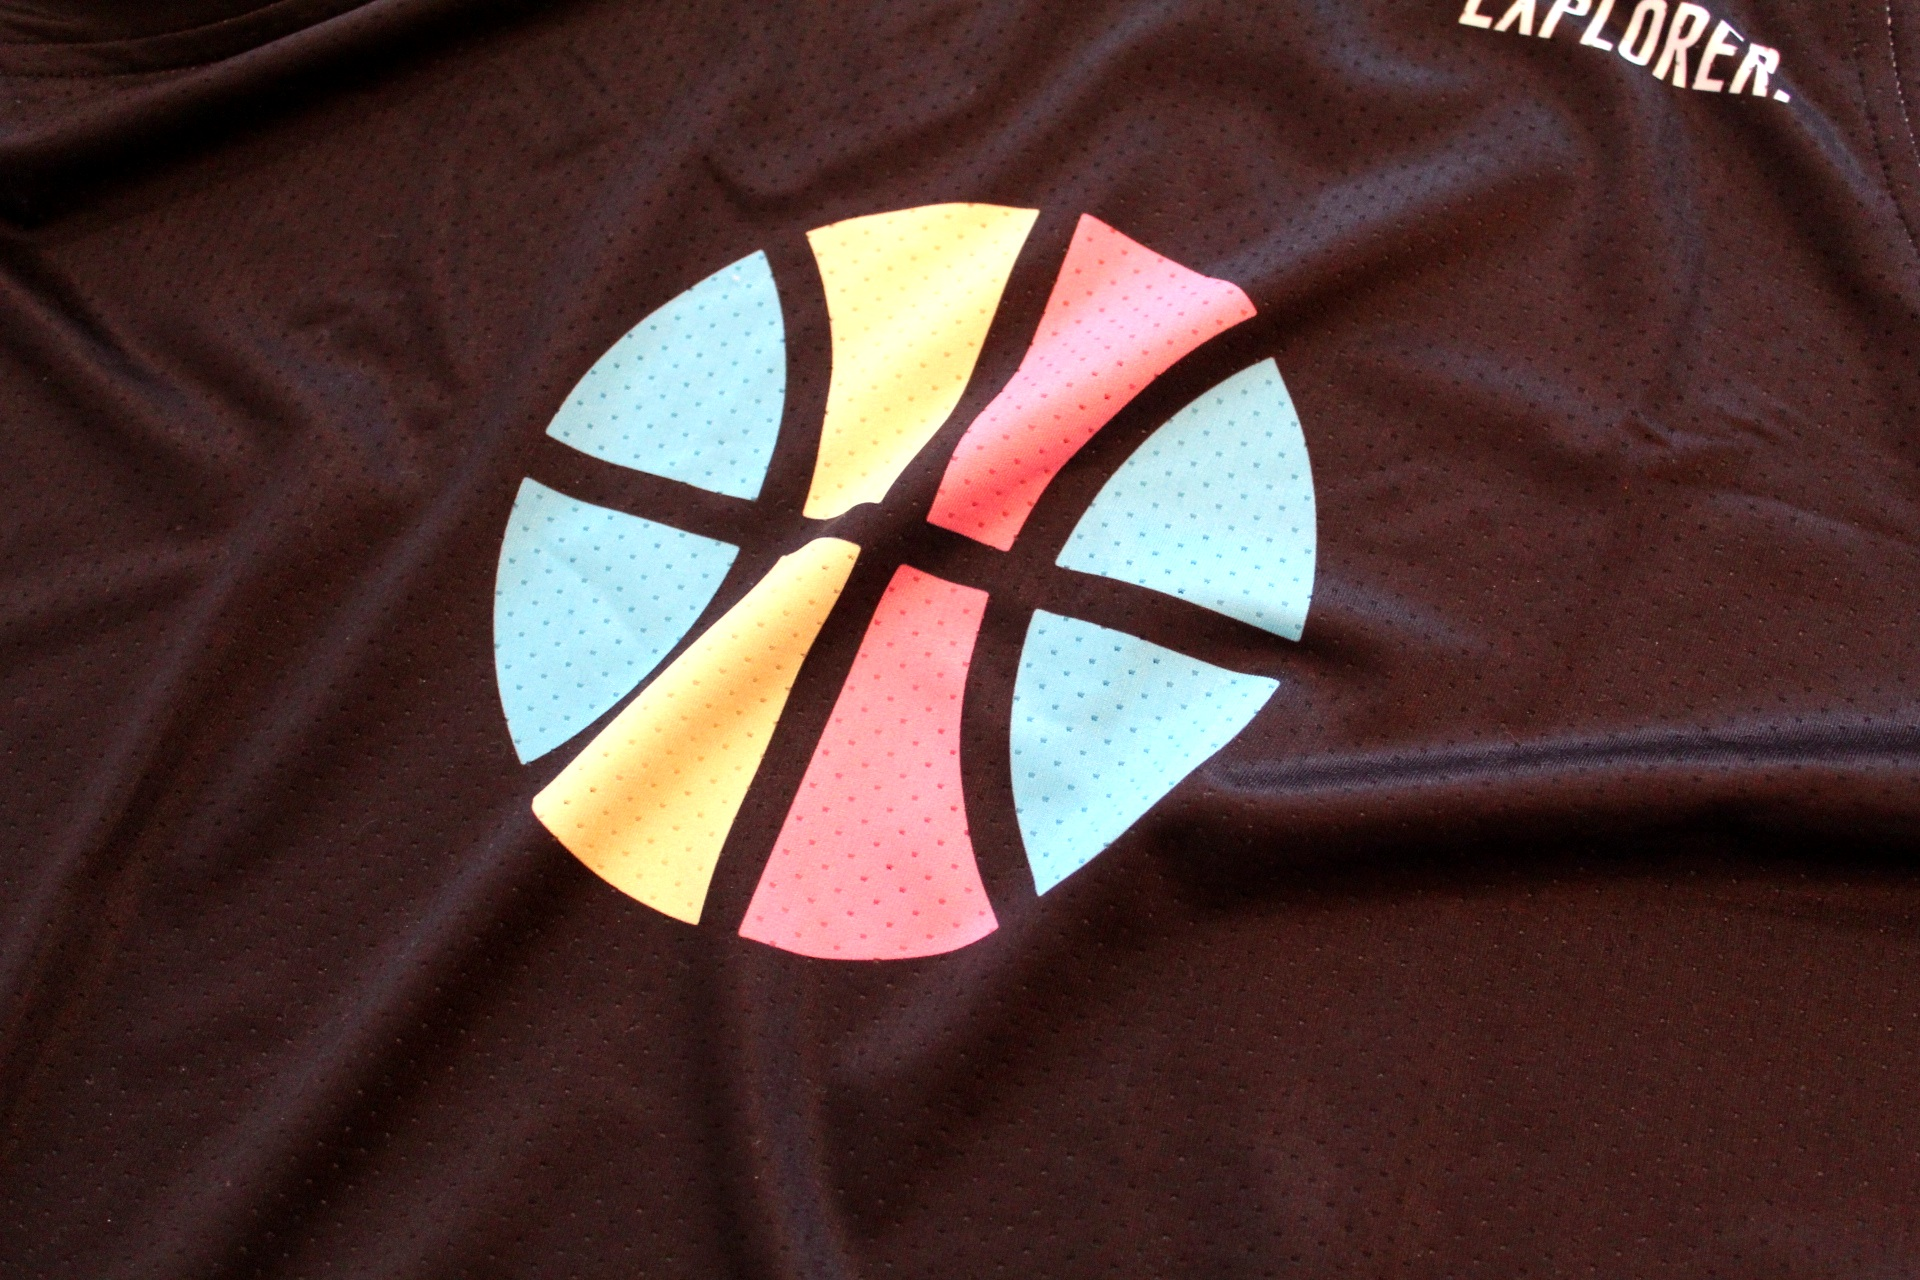 sublimation basketball jersey fabric.jpg